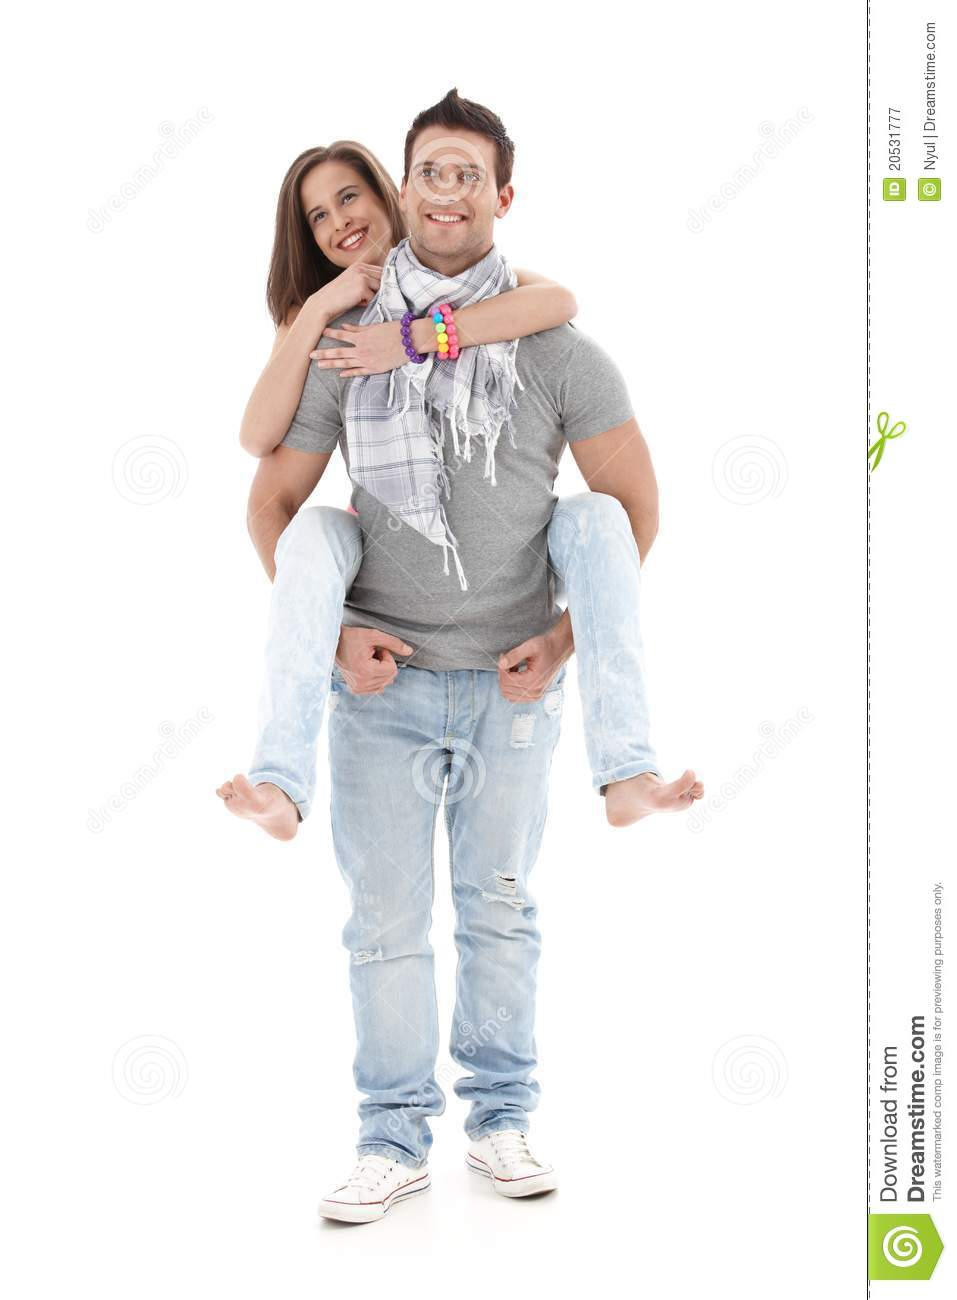 boyfriend carrying girl on back laughing royalty free